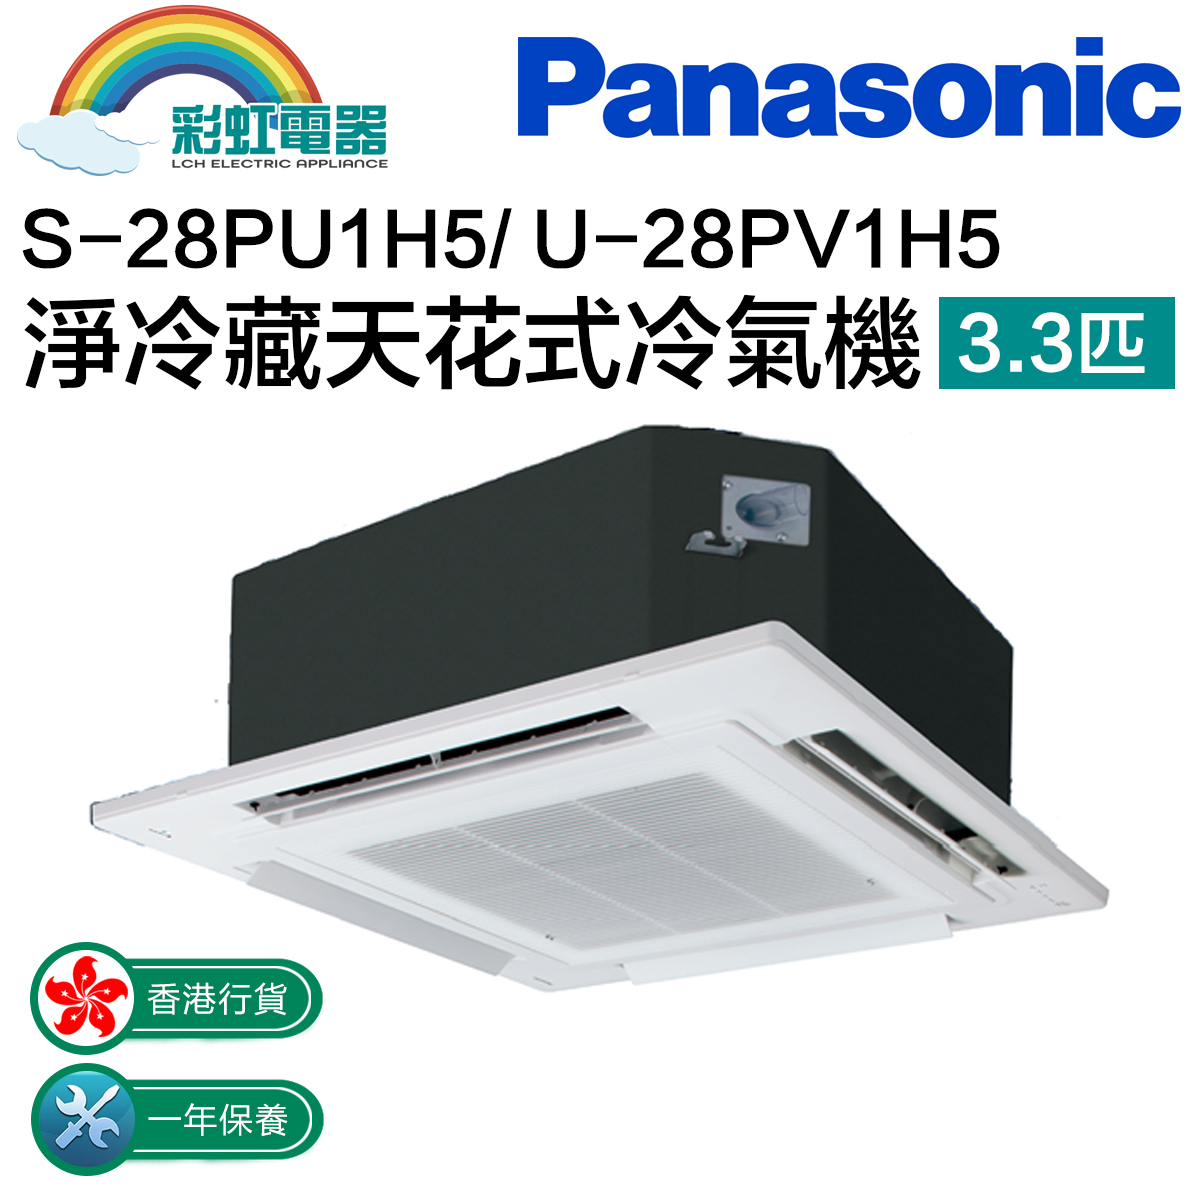 S-28pu1h5 / u-28pv1h5 net refrigerating day fancy air conditioner 3.3 pieces